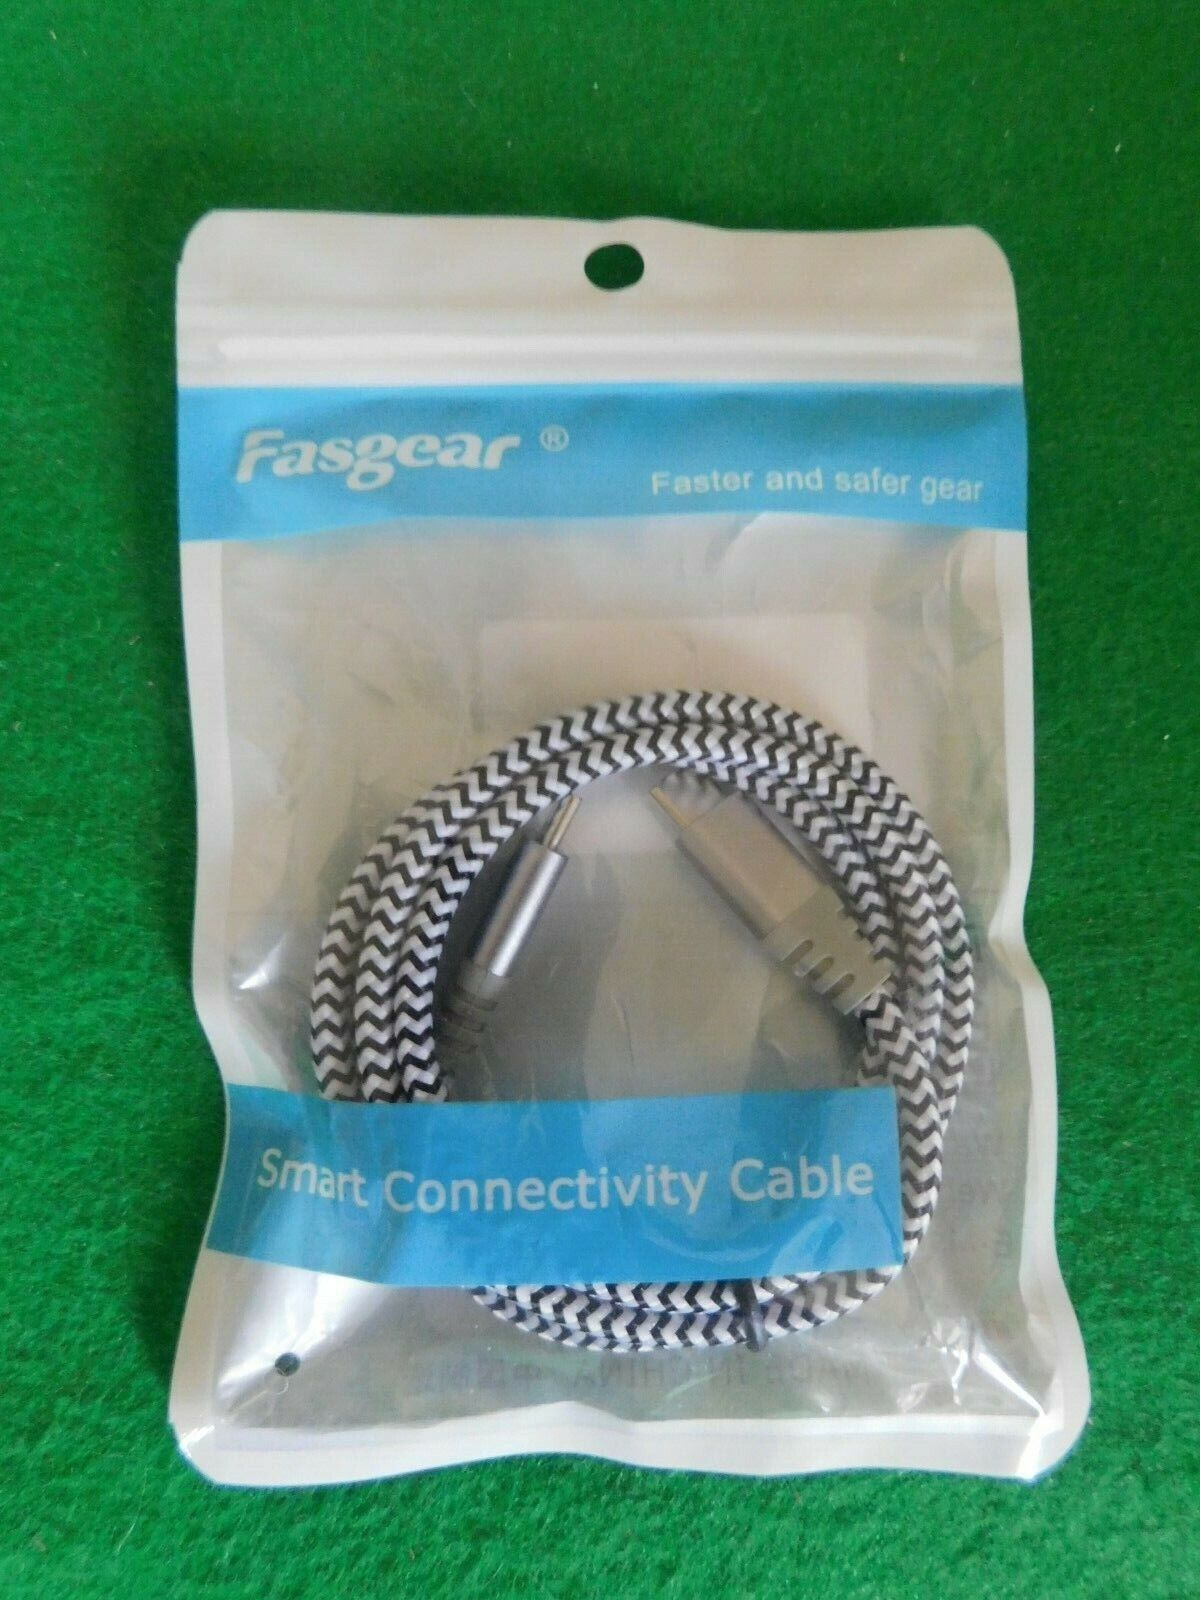 Fasgear USB 2.0 C To C Cable (3ft) – Nylon Braided USB to USB Cable Male to M...